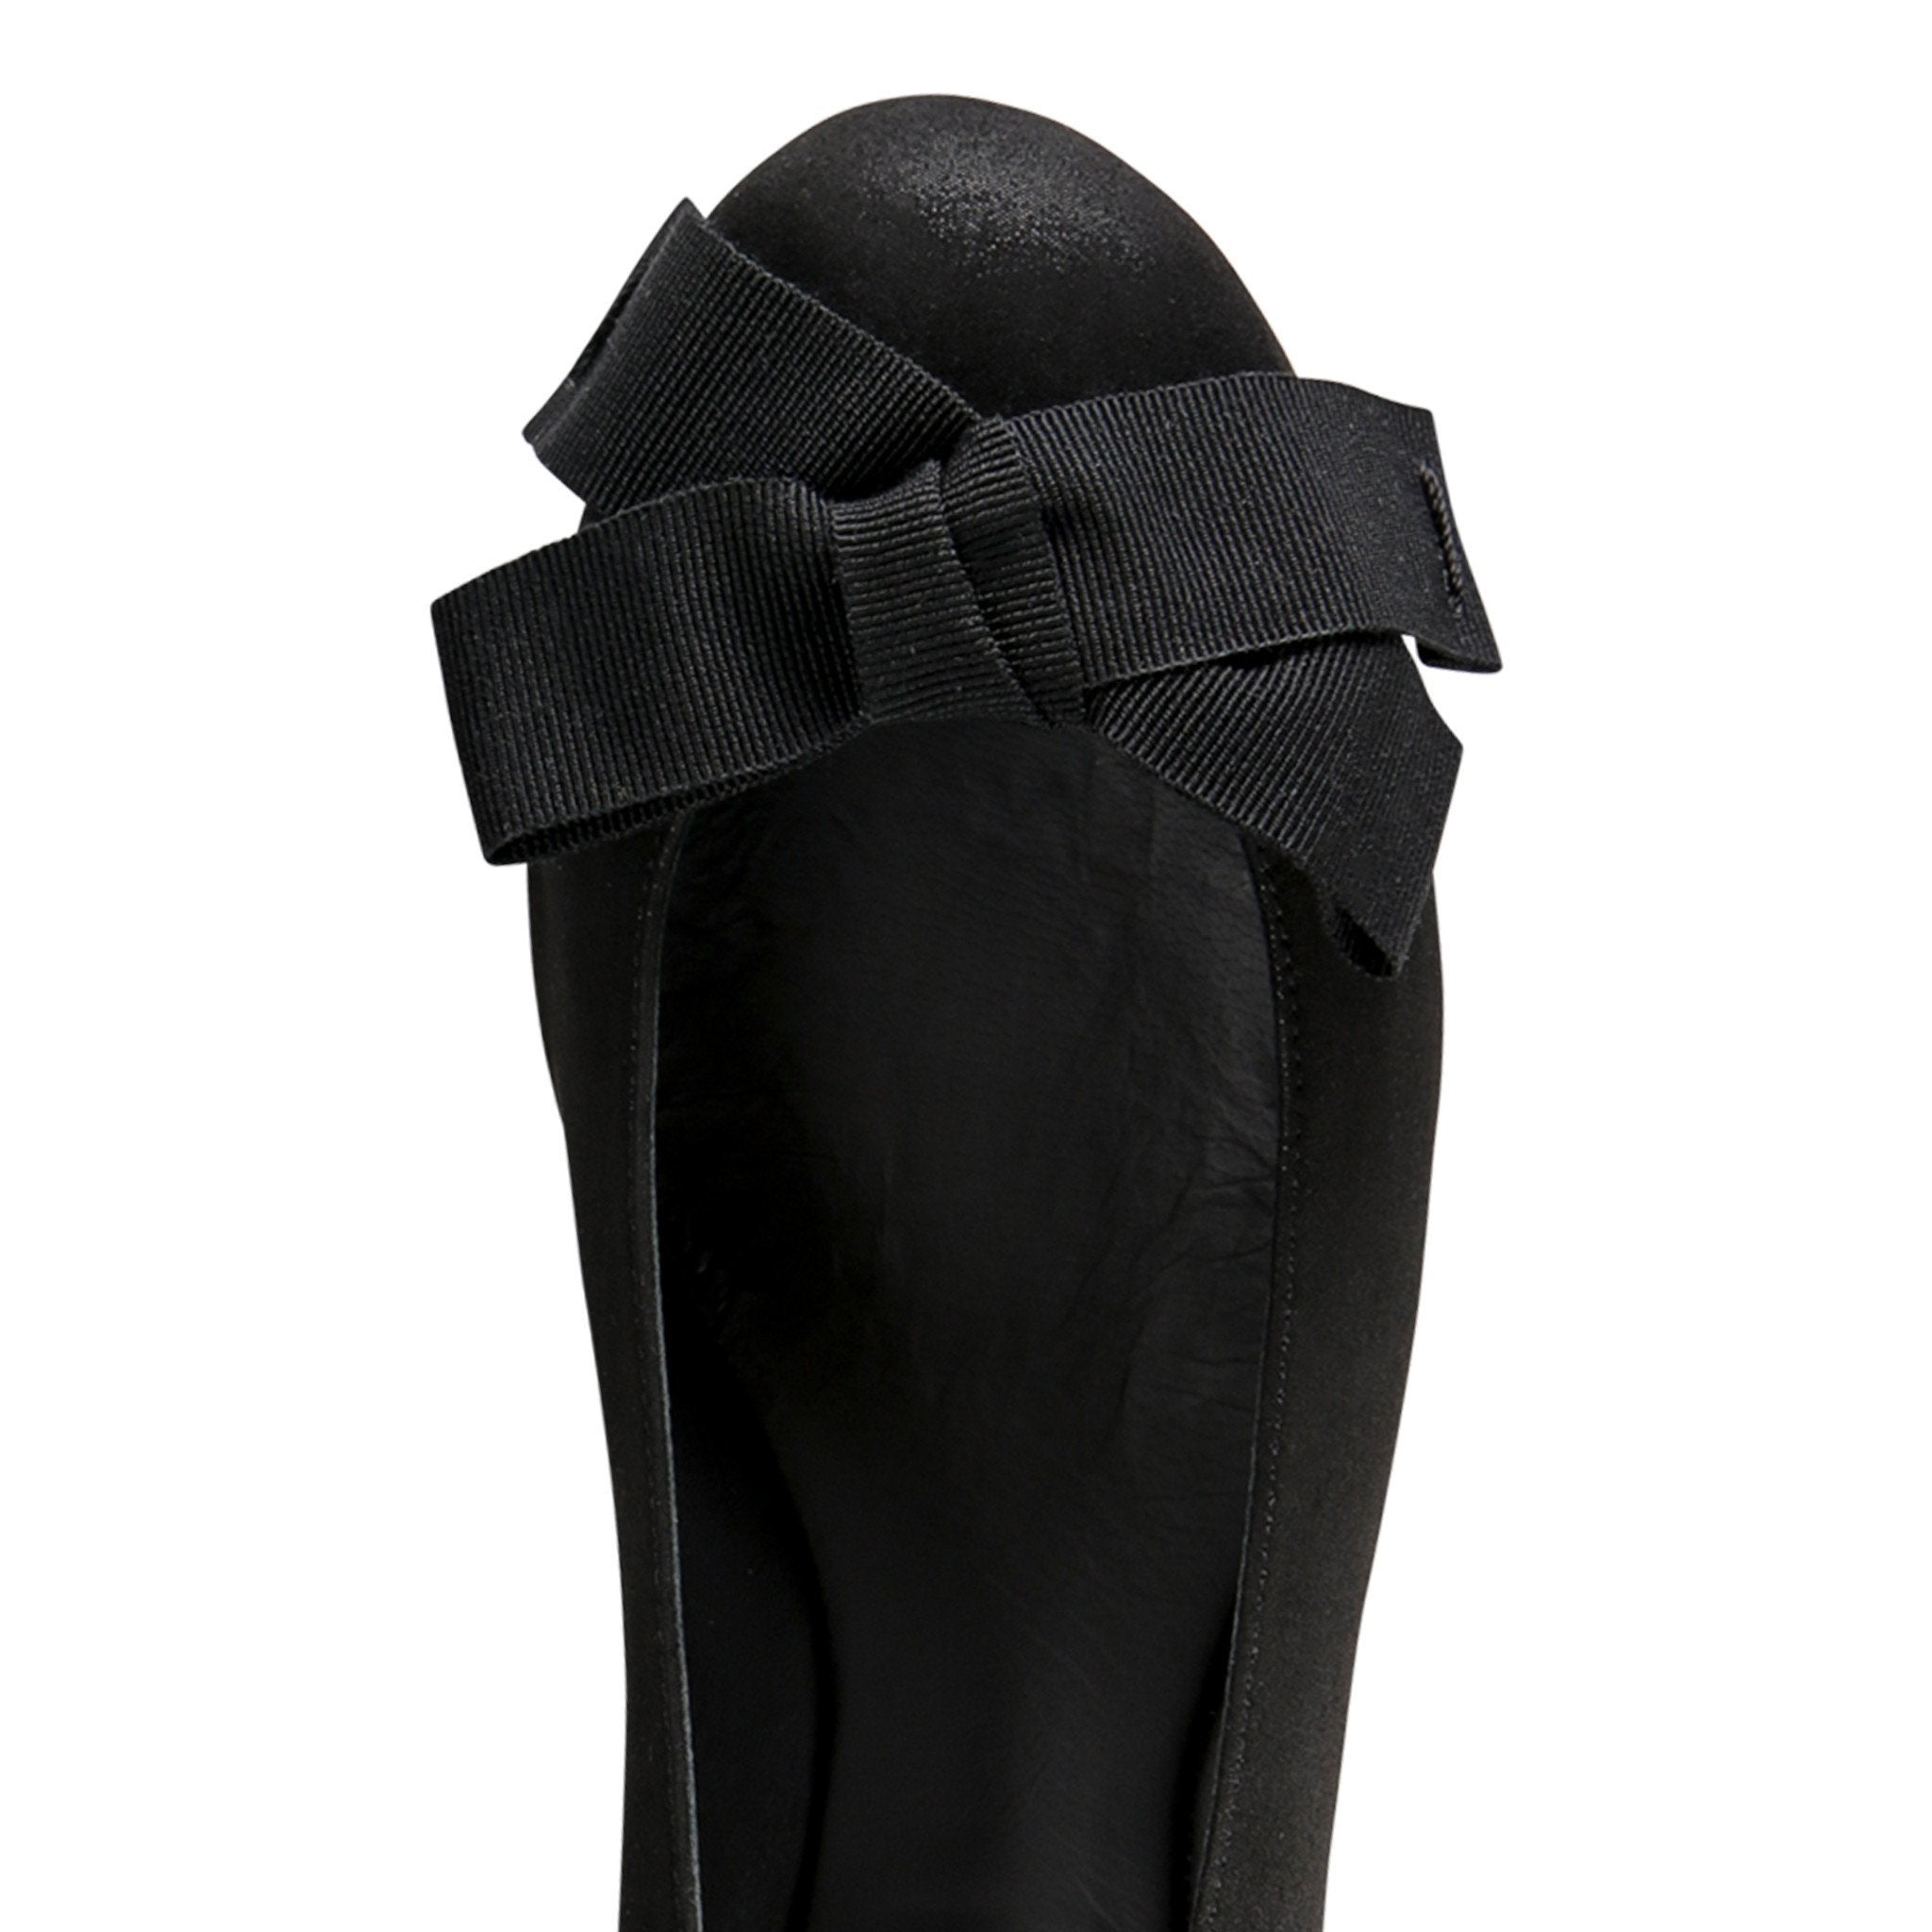 VENEZIA - Hydra Nero + Grosgrain Bow, VIAJIYU - Women's Hand Made Sustainable Luxury Shoes. Made in Italy. Made to Order.